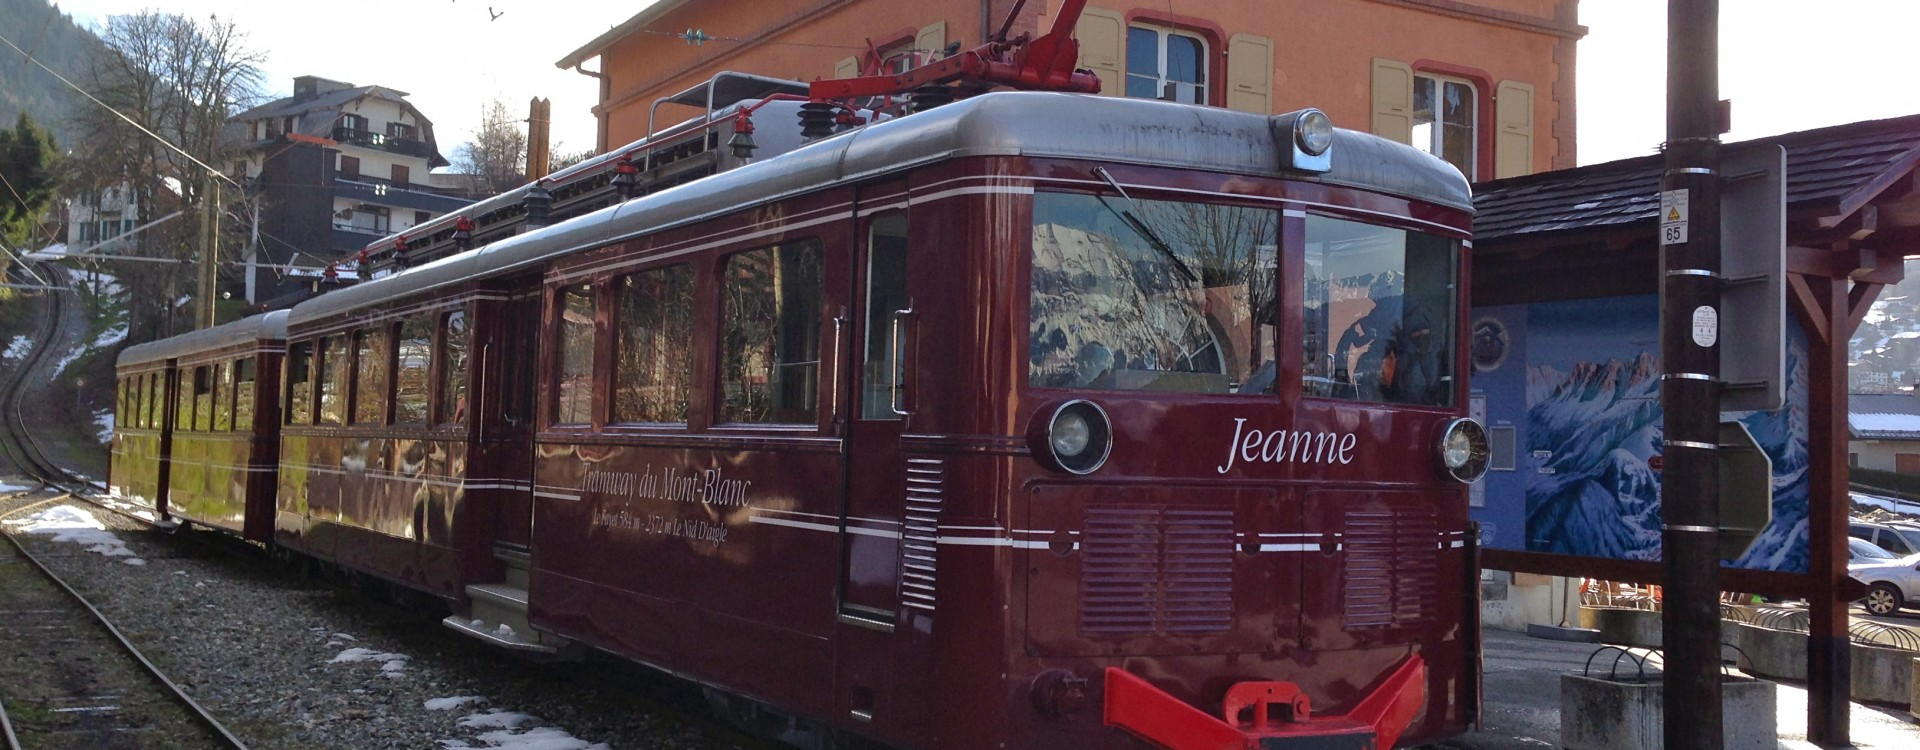 Tramway du Mont Blanc stops at Saint Gervais station for the epic climb to the Bionnassay Glacier